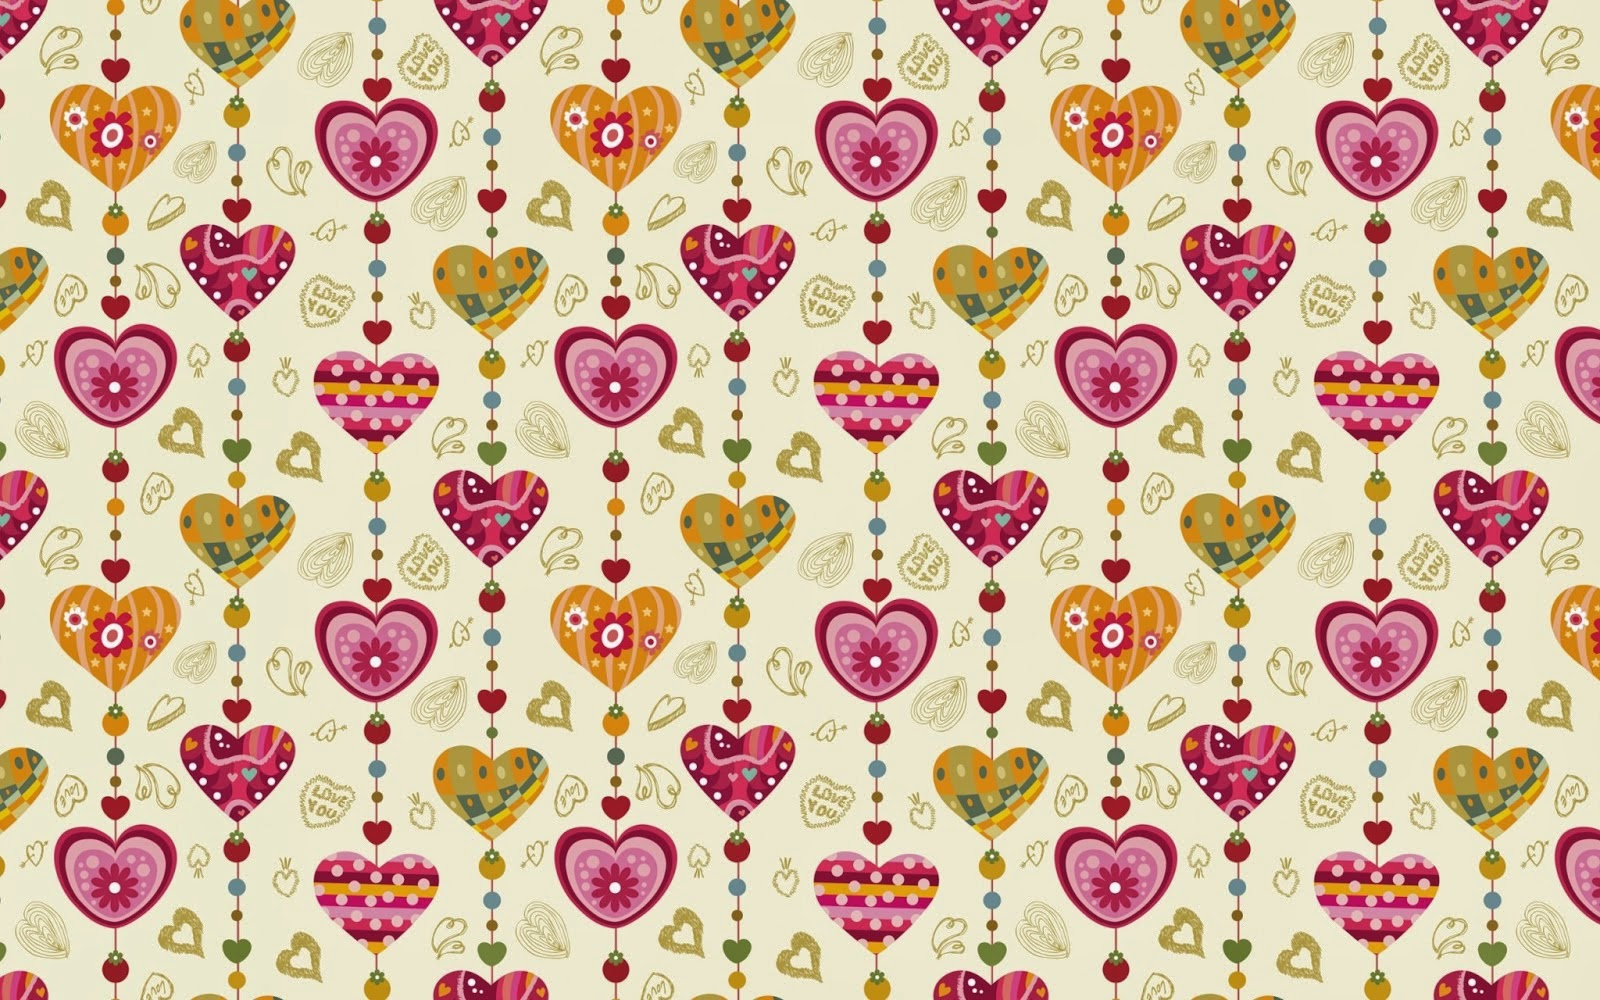 Hearts Wallpapers, part 2